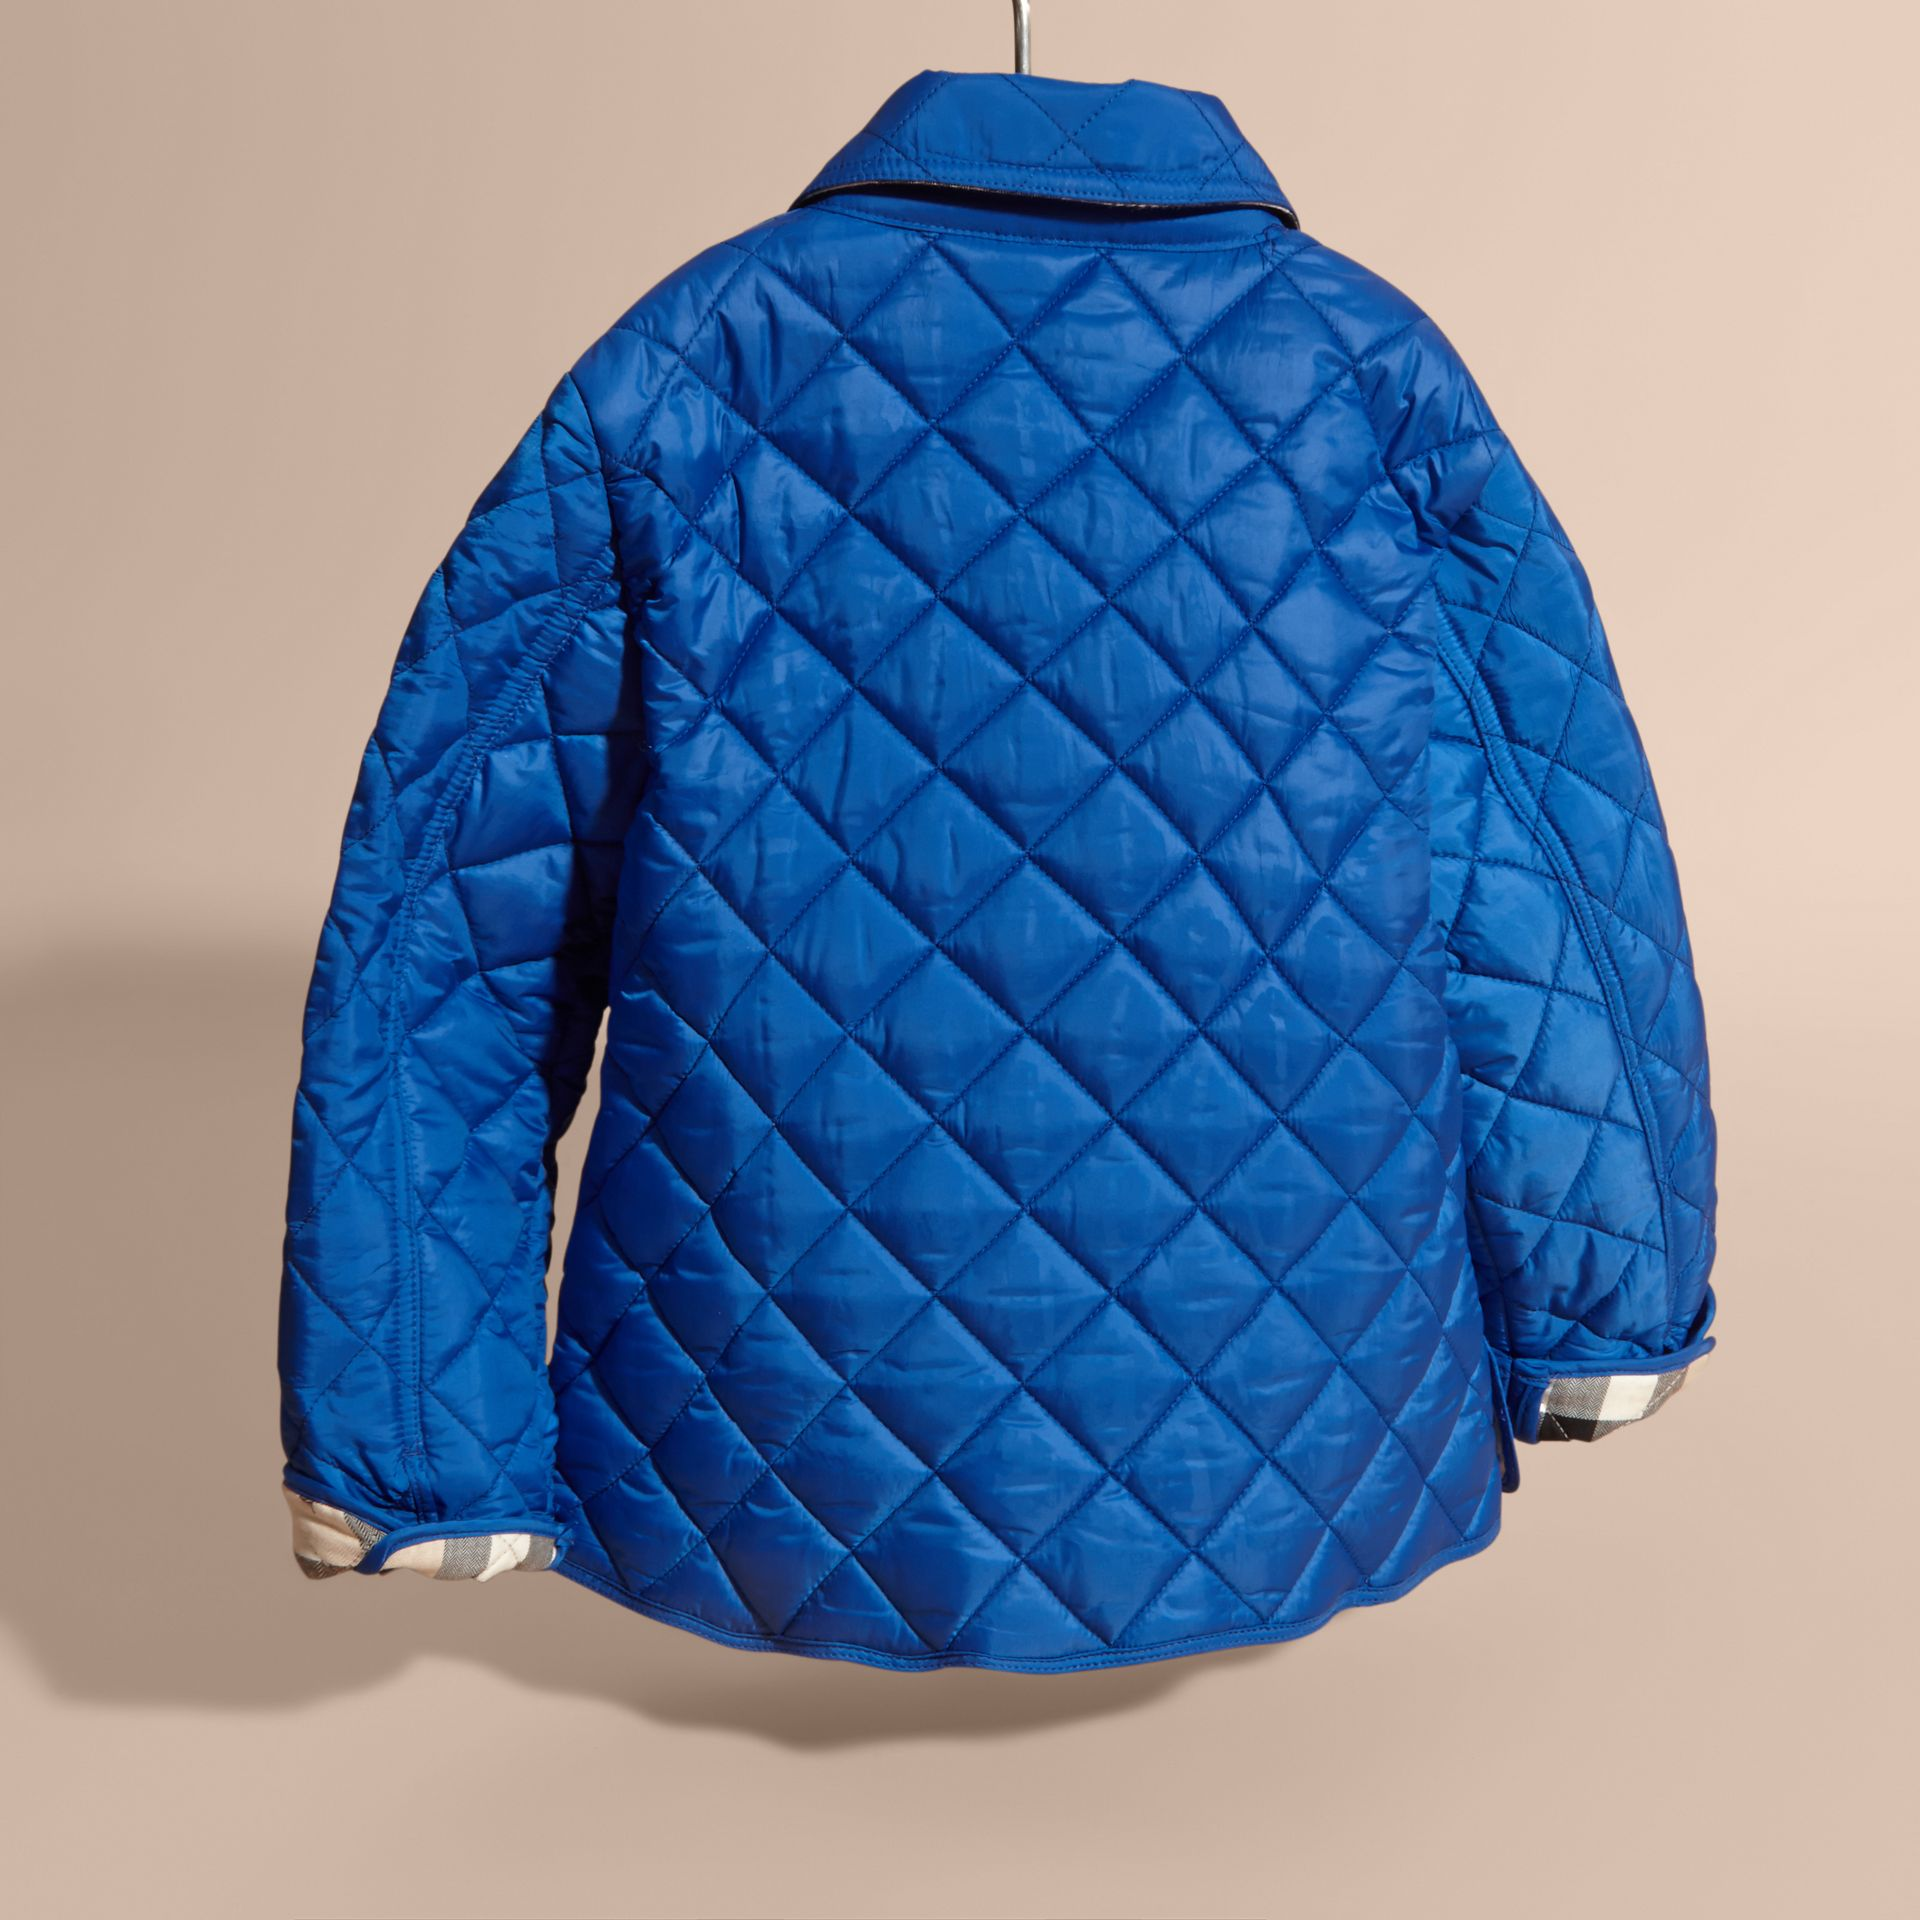 Brilliant blue Diamond Quilted Jacket Brilliant Blue - gallery image 4